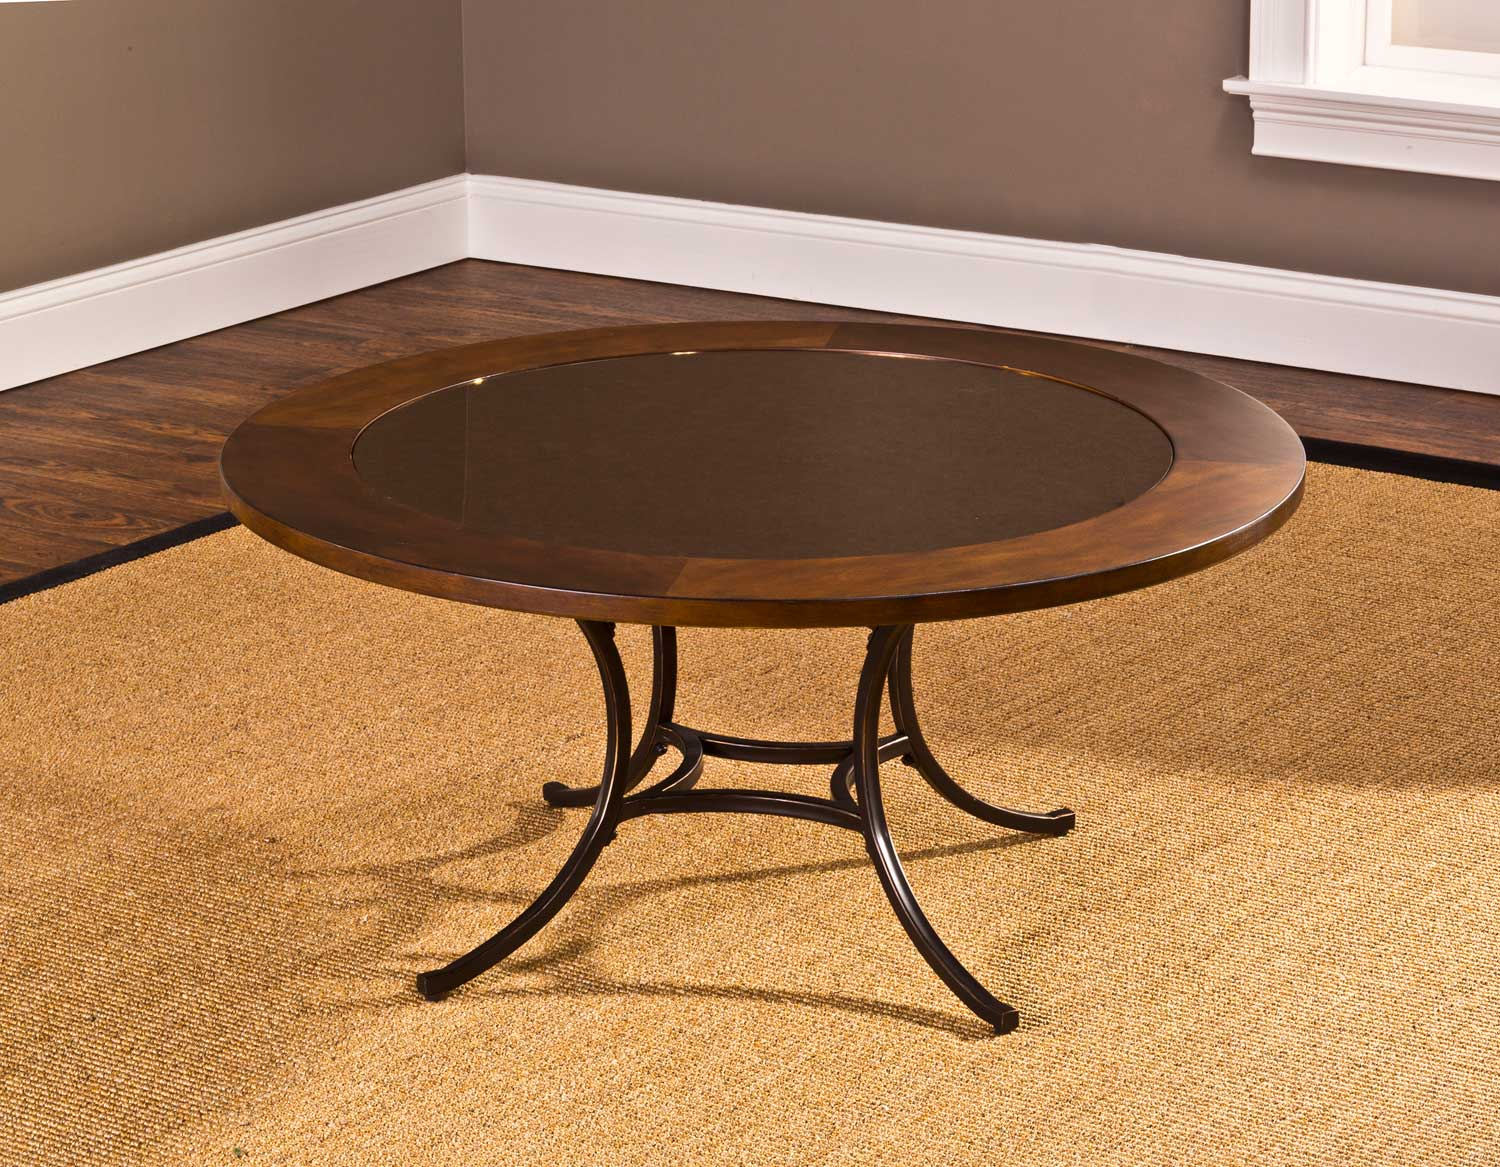 Hillsdale Montclair Round Coffee Table Wood Border With Mirrored Glass Top Metal Copper